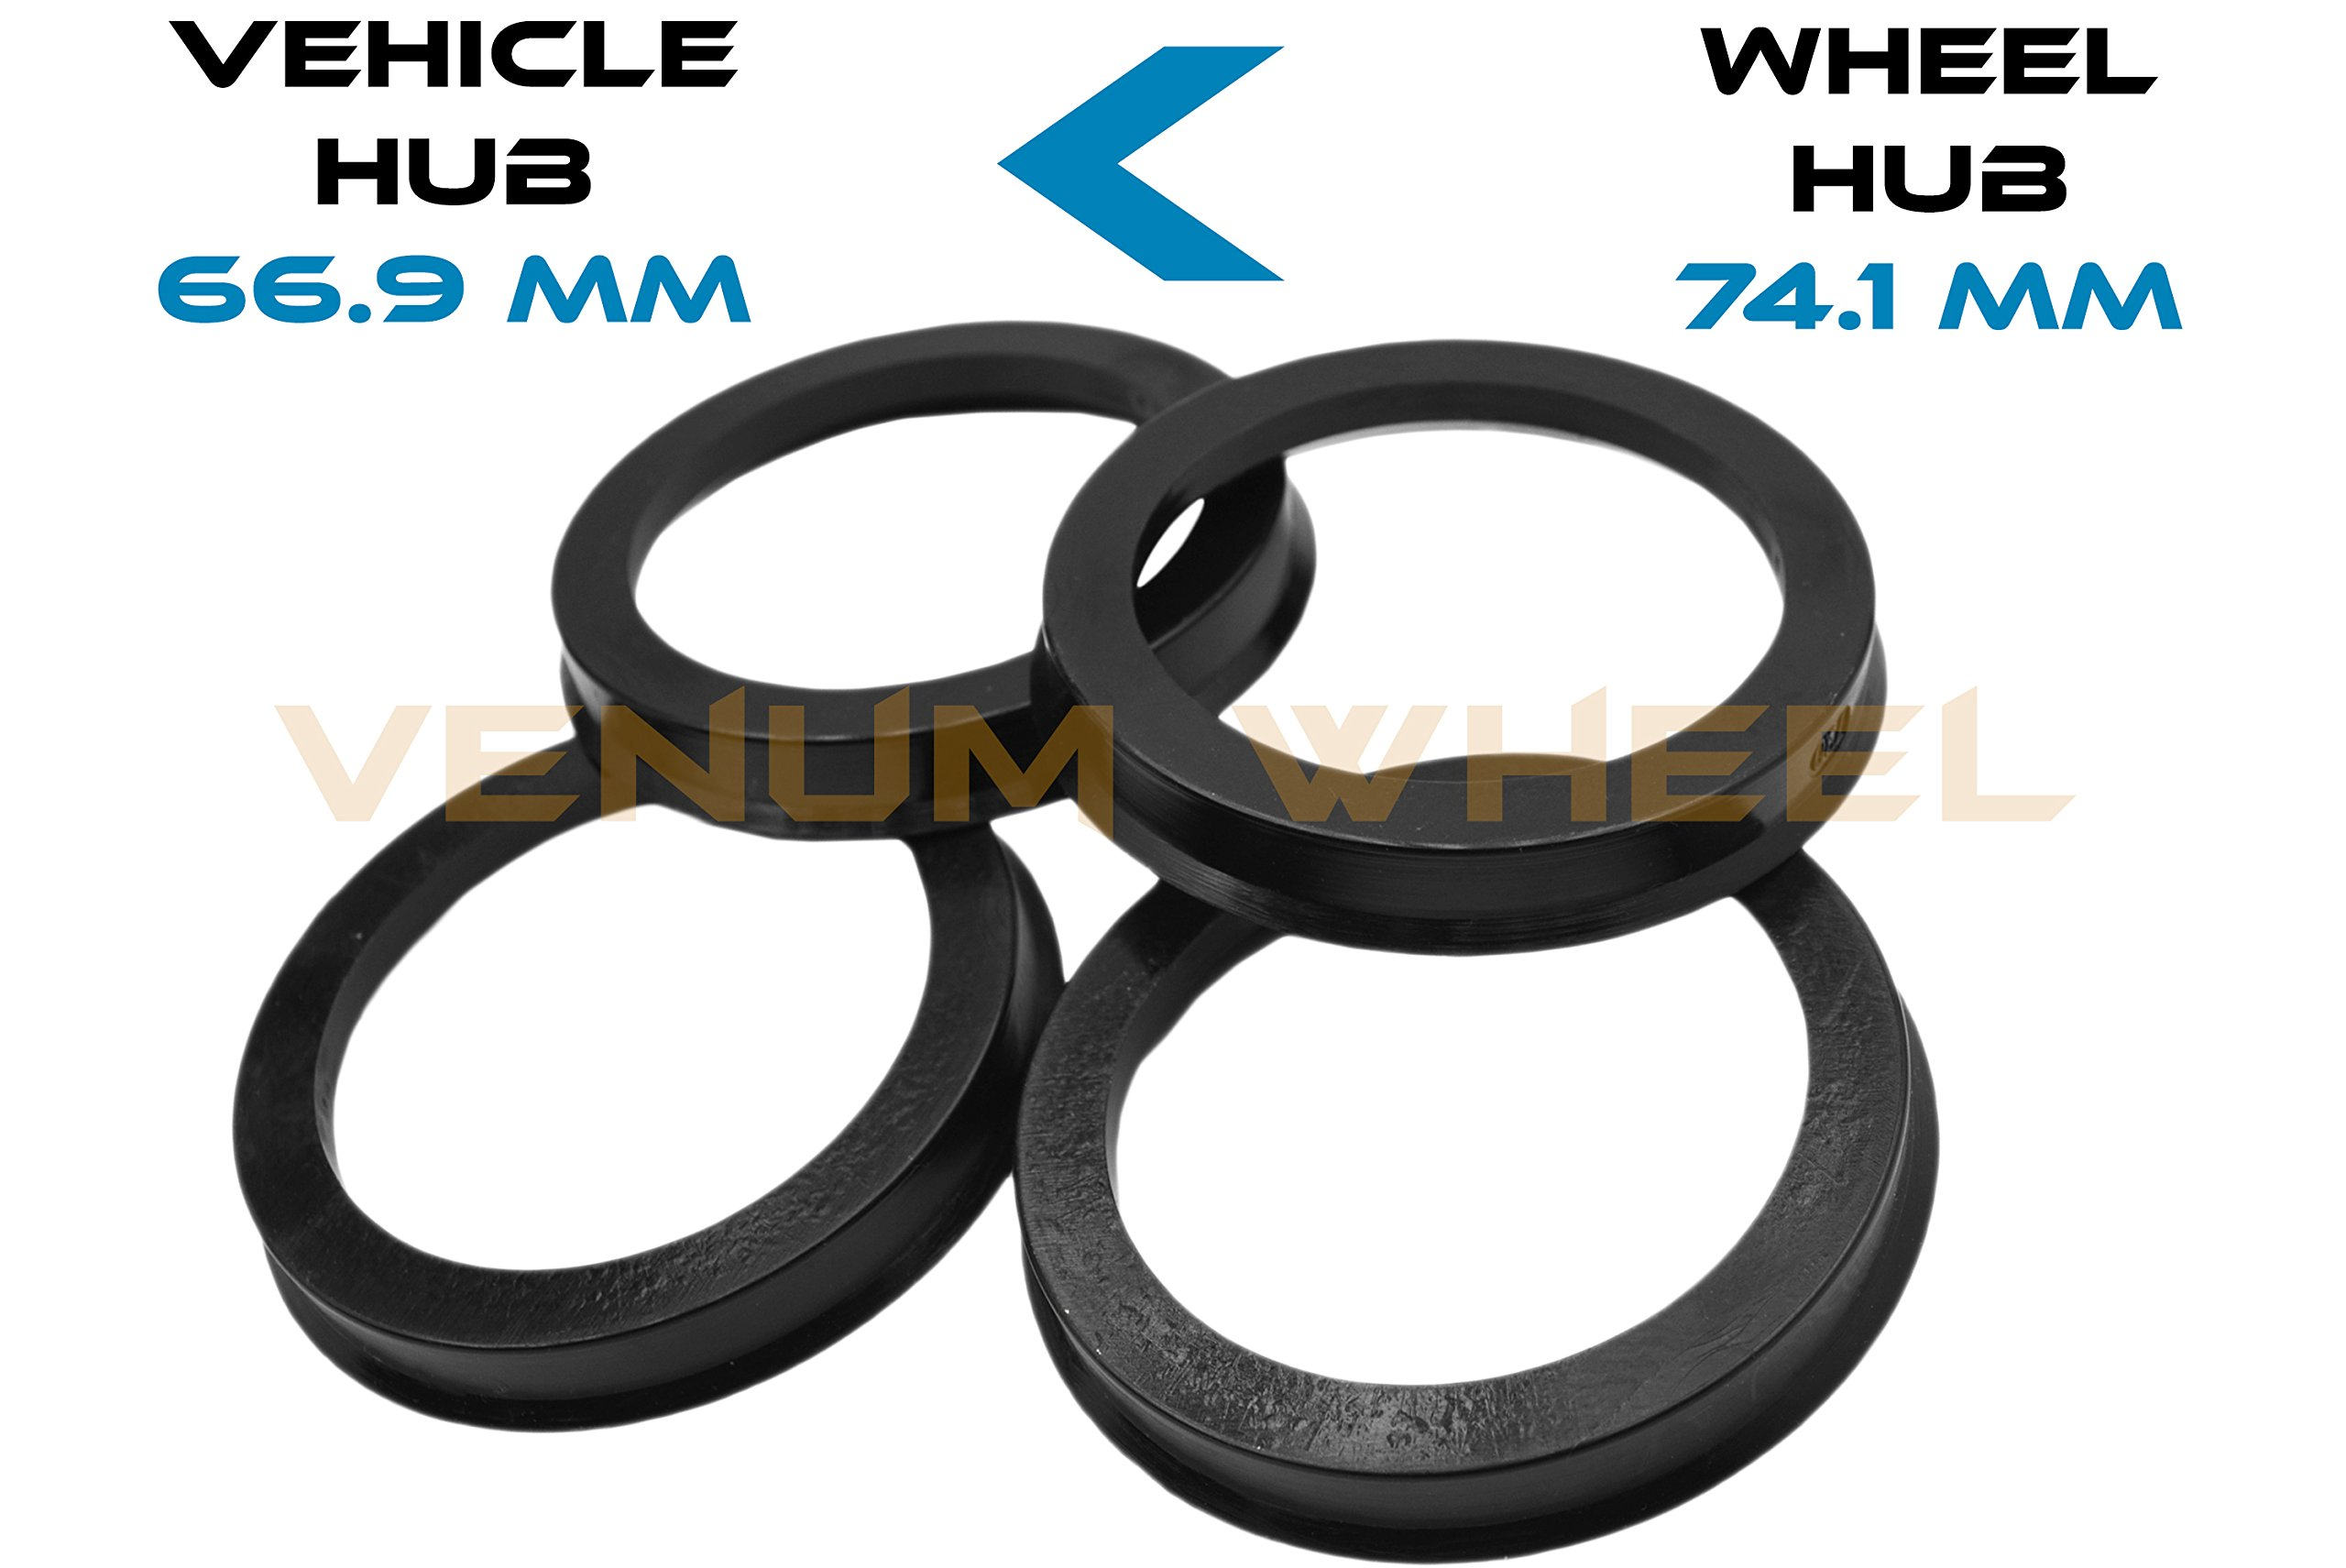 4 Hub Centric Rings 66.9 ID To 74.1 OD Black Polycarbonate Material ( Vehicle 66.9mm to Wheel 74.1mm)